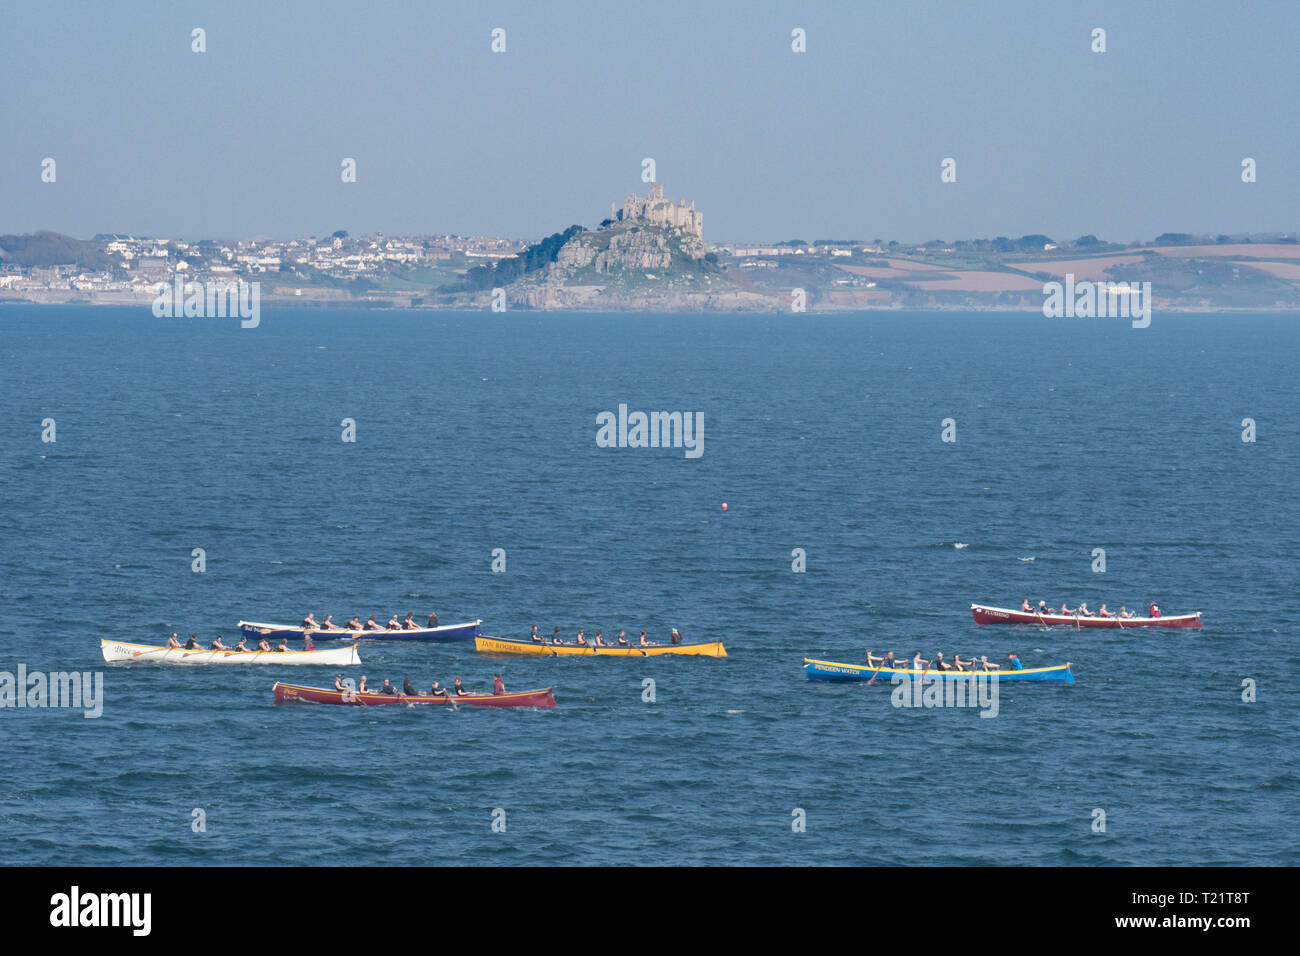 Newlyn, Cornwall, UK. 30th Mar, 2019. UK Weather. Fine weather for gig racers out competing on the sea at Mounts Bay this afternoon. Credit: Simon Maycock/Alamy Live News Stock Photo